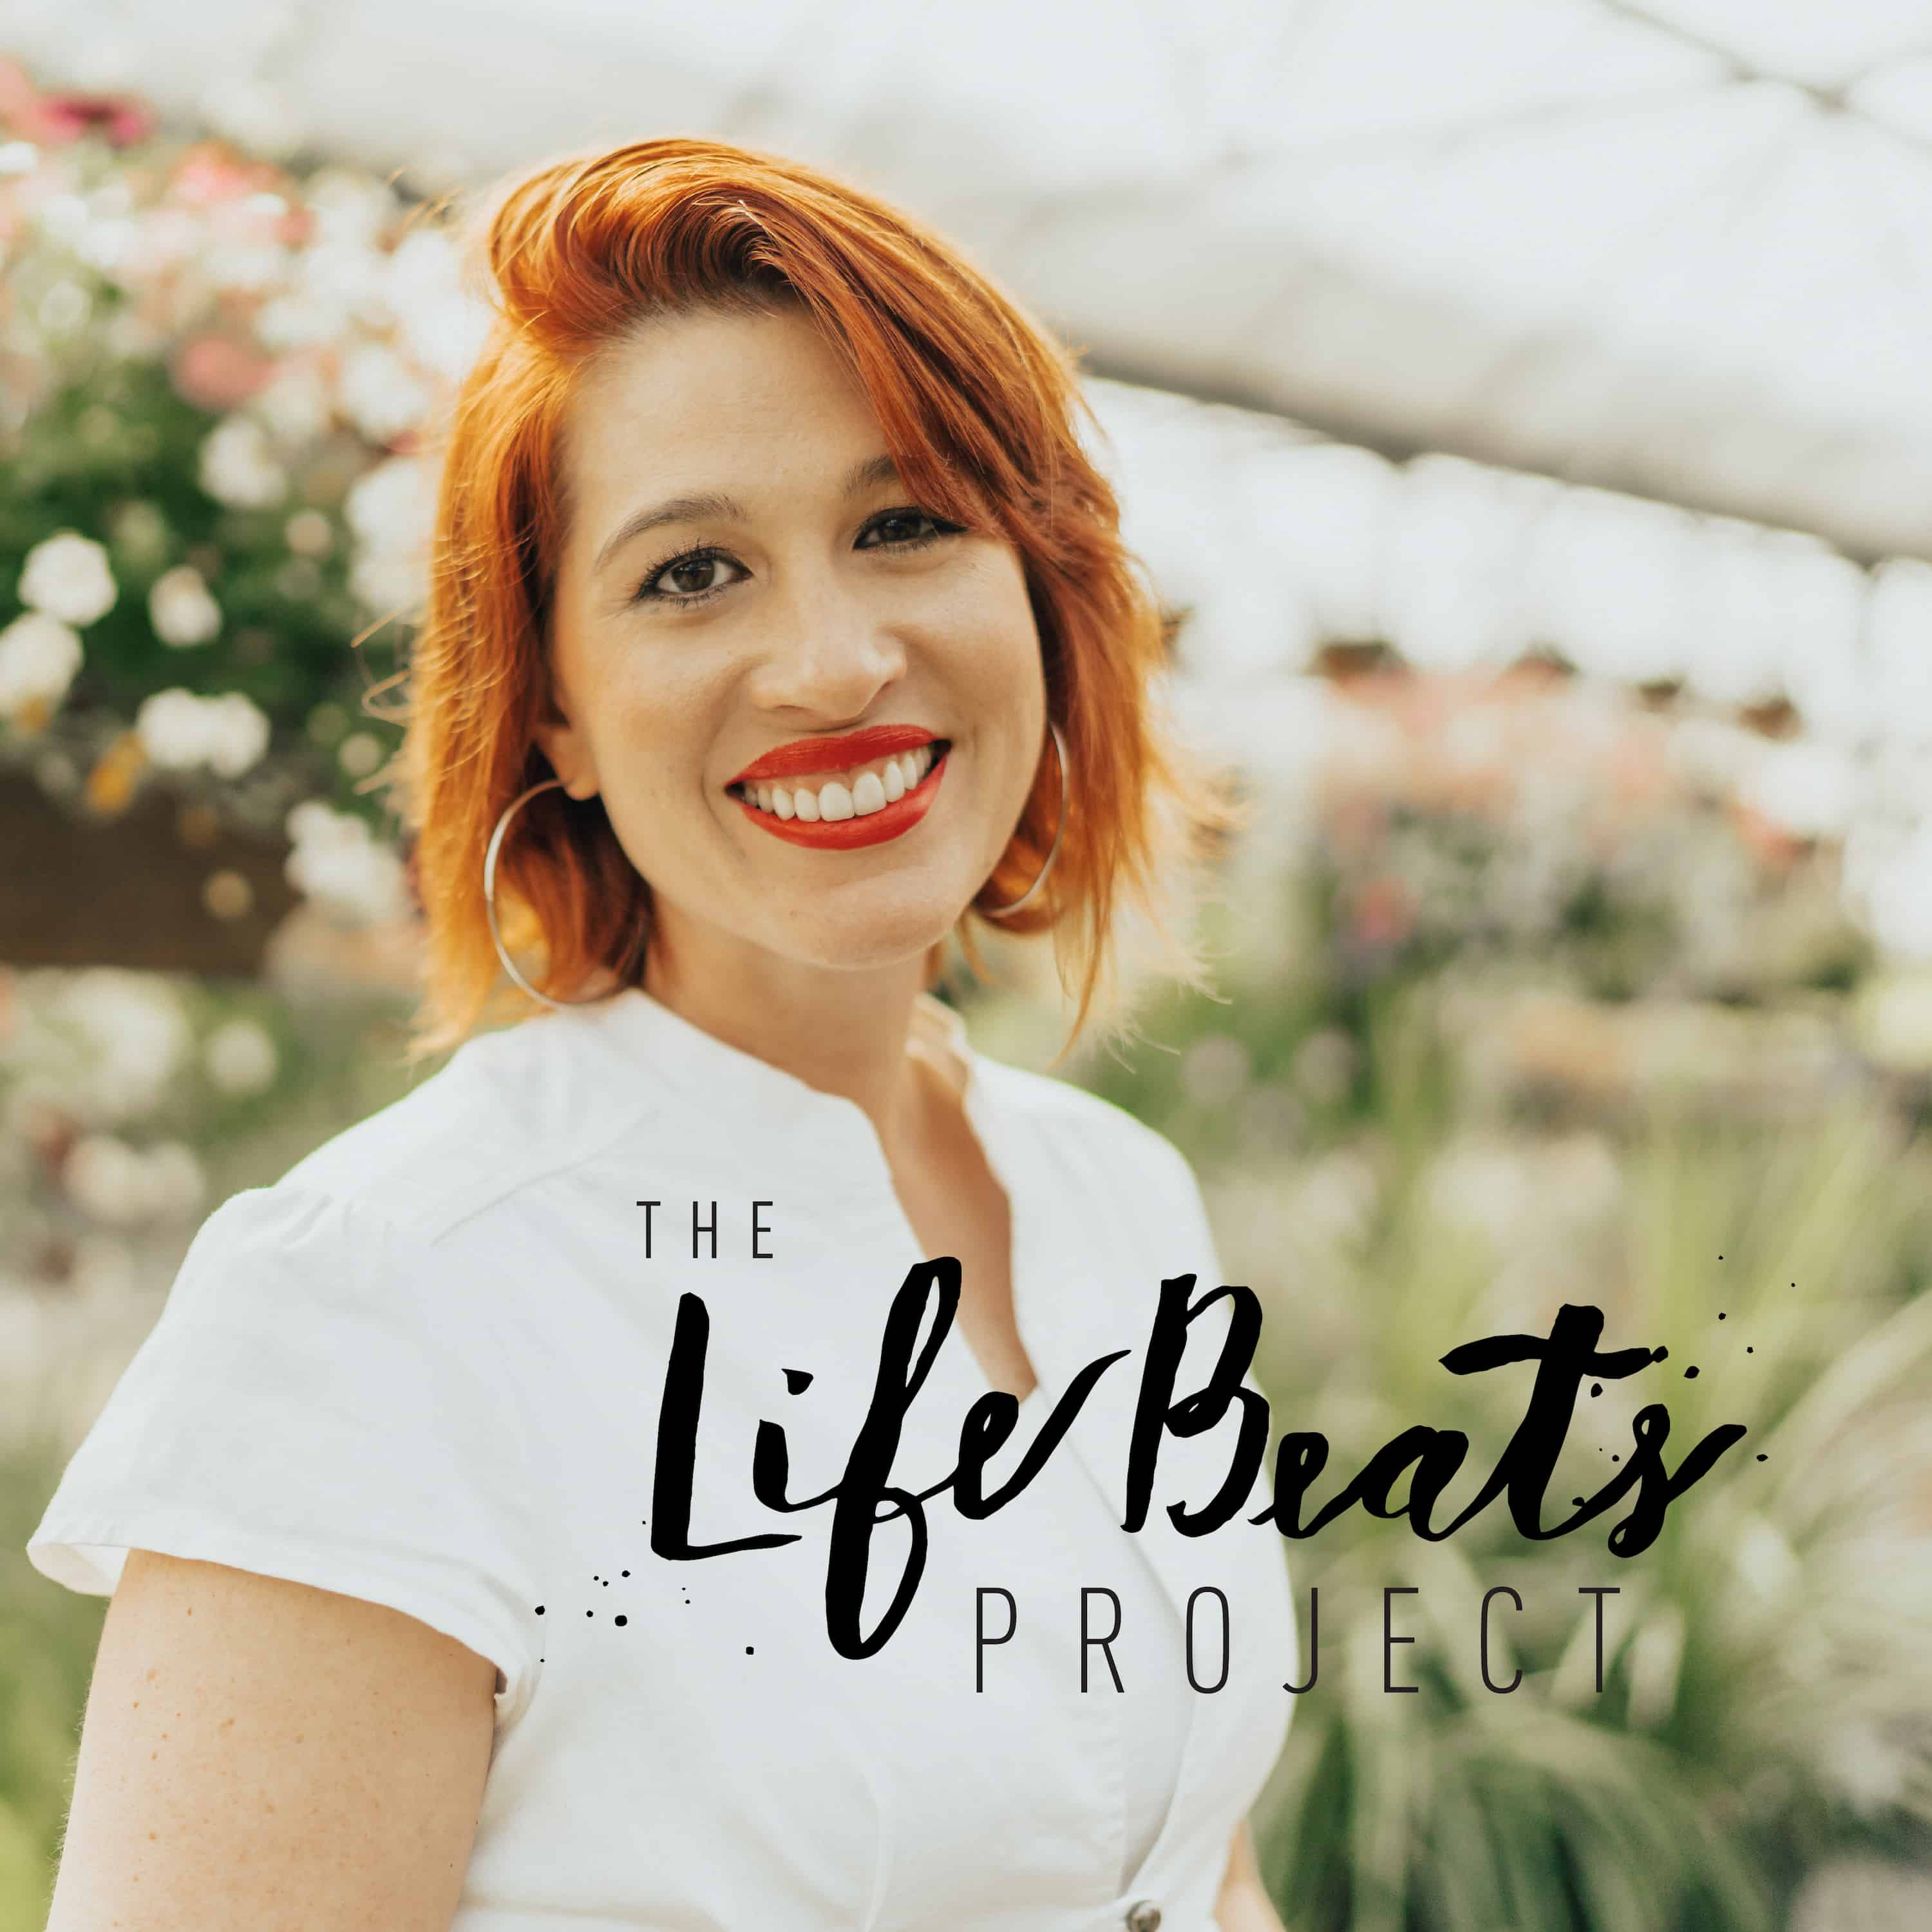 The LifeBeats Project